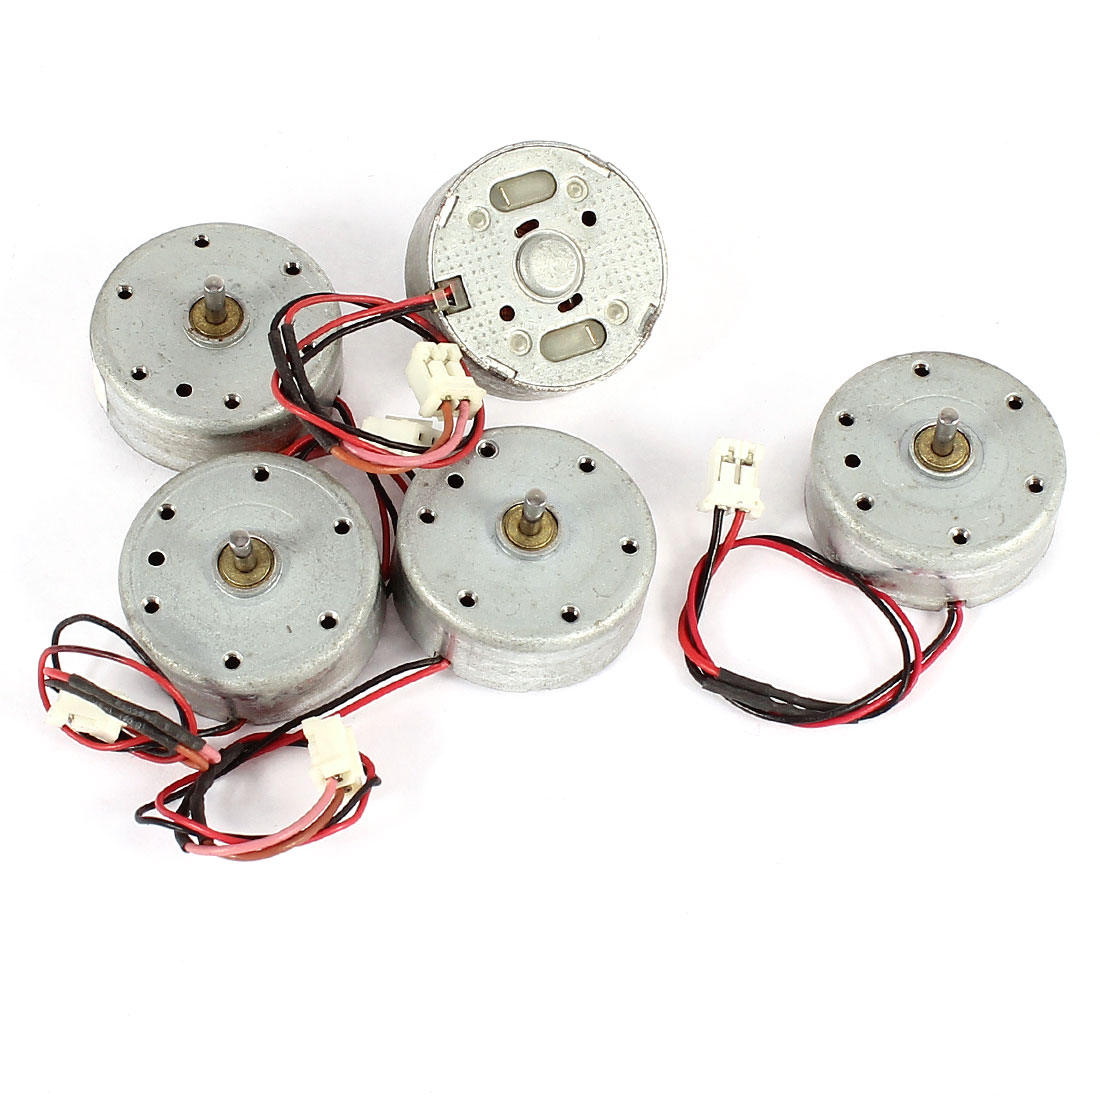 5 Pcs DC 1.5-4.5V 3200RPM Electric Mini Motor 9x25mm for CD DVD Player